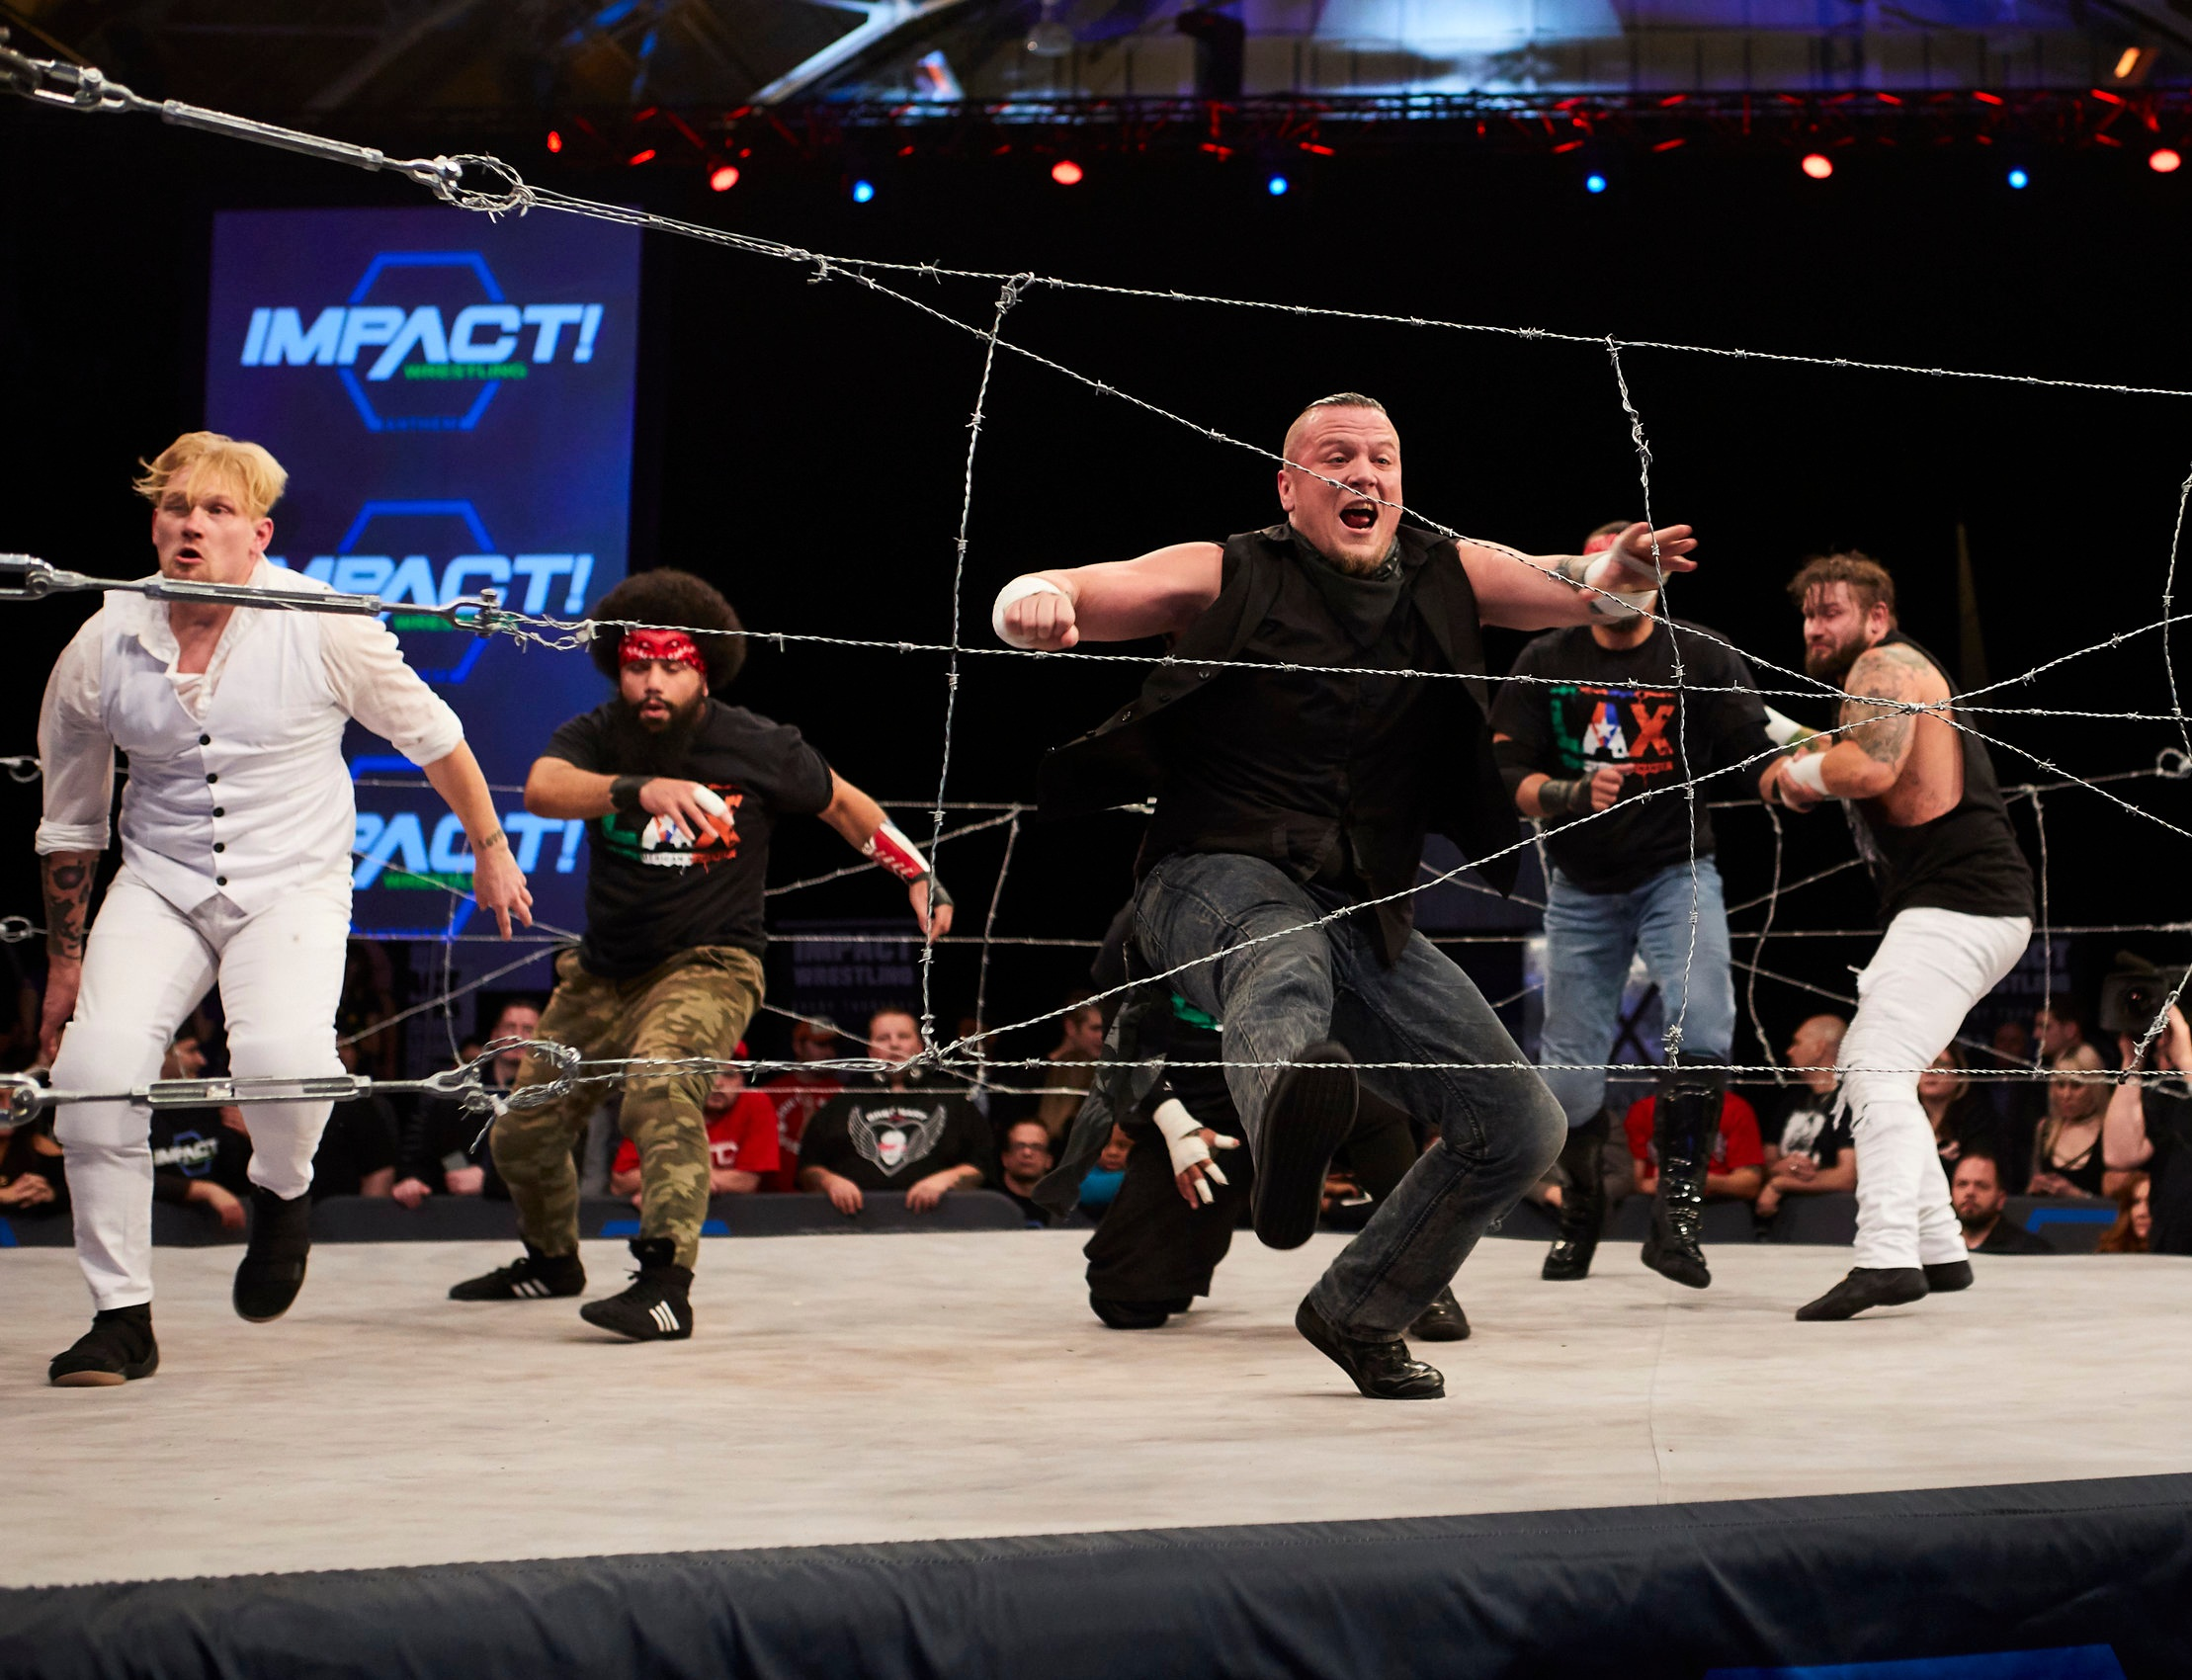 Sami Callihan, center, during oVe's Barbed Wire Masscare match against LAX in Jan. 2018. Callihan, who is one of IMPACT Wrestling's hottest acts with his unique look, brawling style and no-nonsense attitude, will face Tessa Blanchard at Slammiversary on July 7.  (Photo courtesy IMPACT Wrestling)